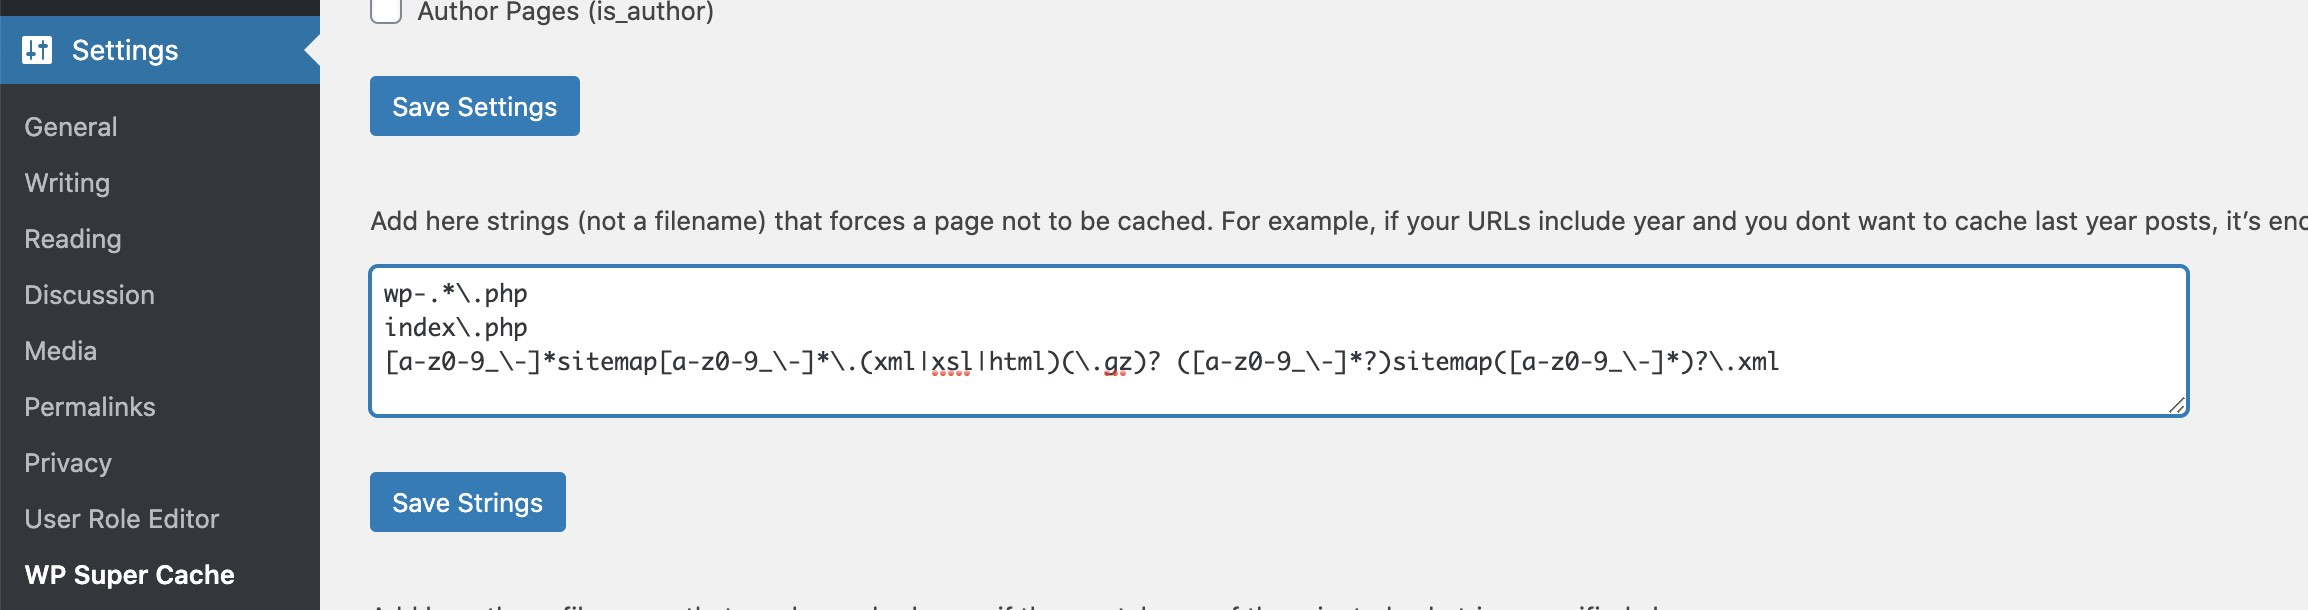 WP Super Cache - Exclude sitemaps from caching